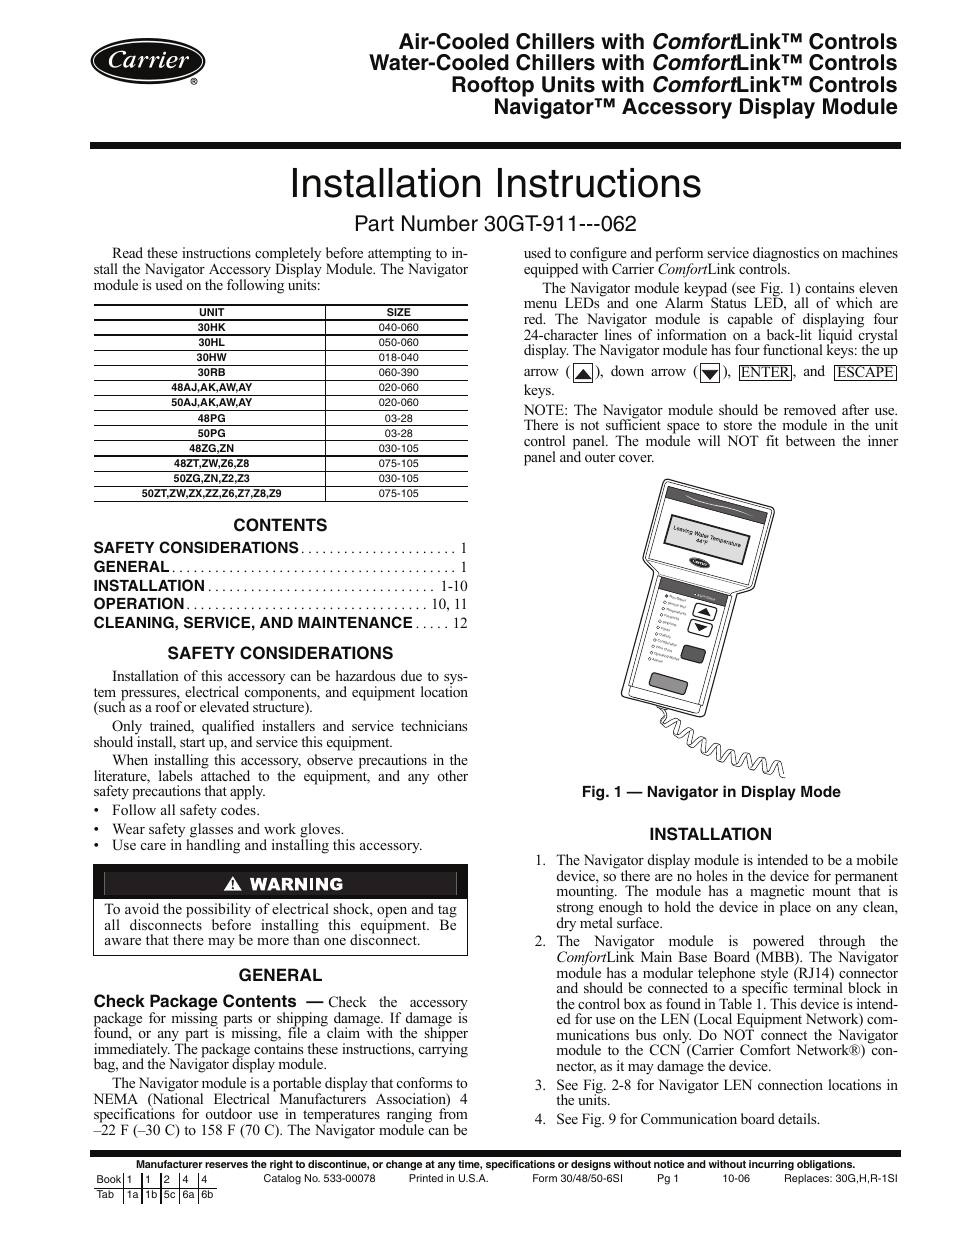 ... chiller manual pdf carrier 30gt-060 manual. Image not found or type  unknown